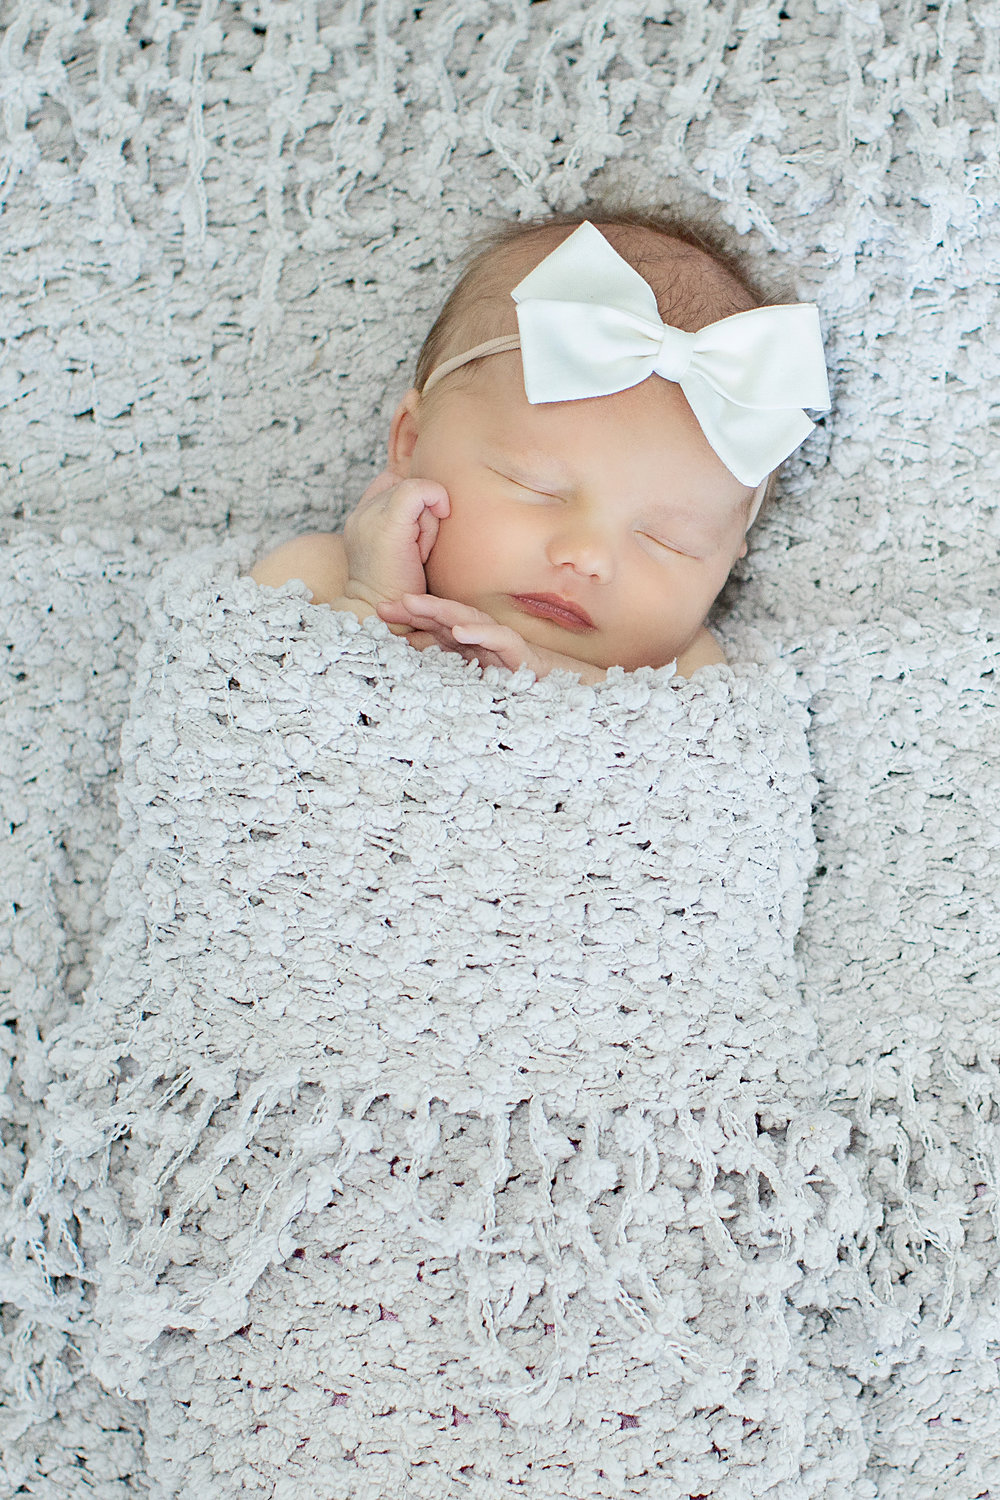 NEWBORNS - birth stories can be photographed in your home, in my studio or in the hospital.$275 |25 full-resolution images.